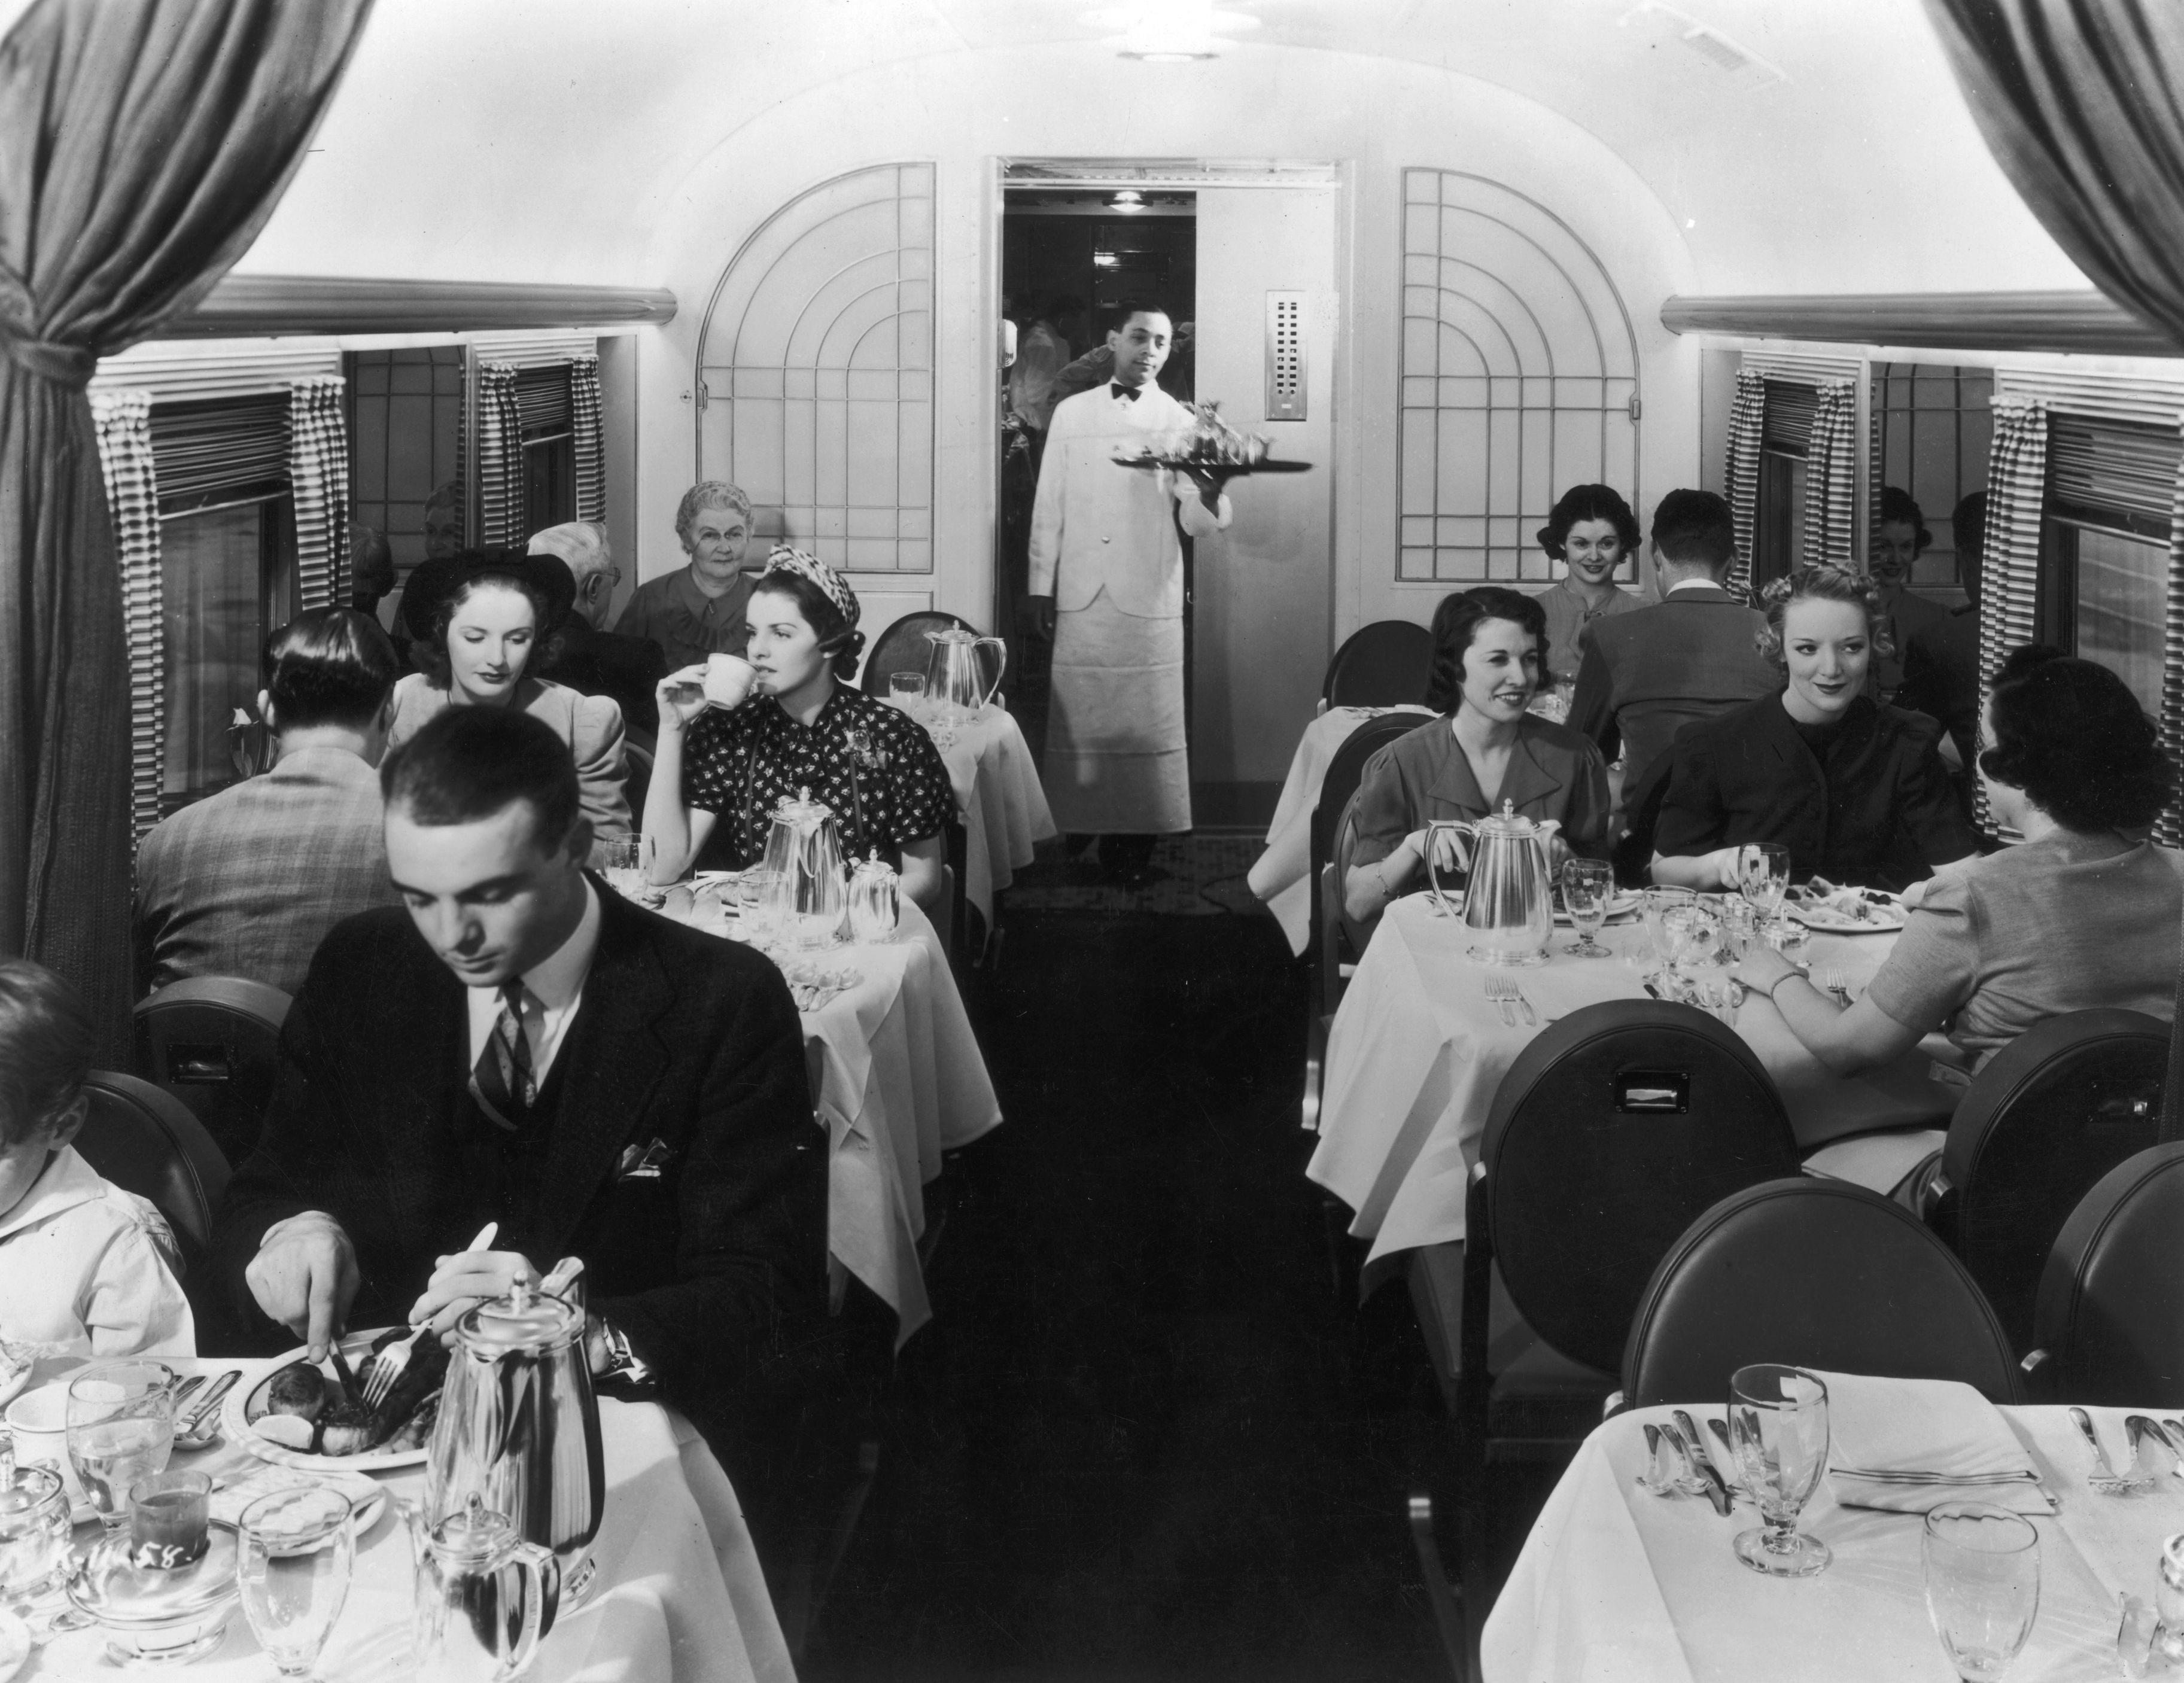 Dining Cars Have Been Around the Since the 1800s. Now They Face Extinction.